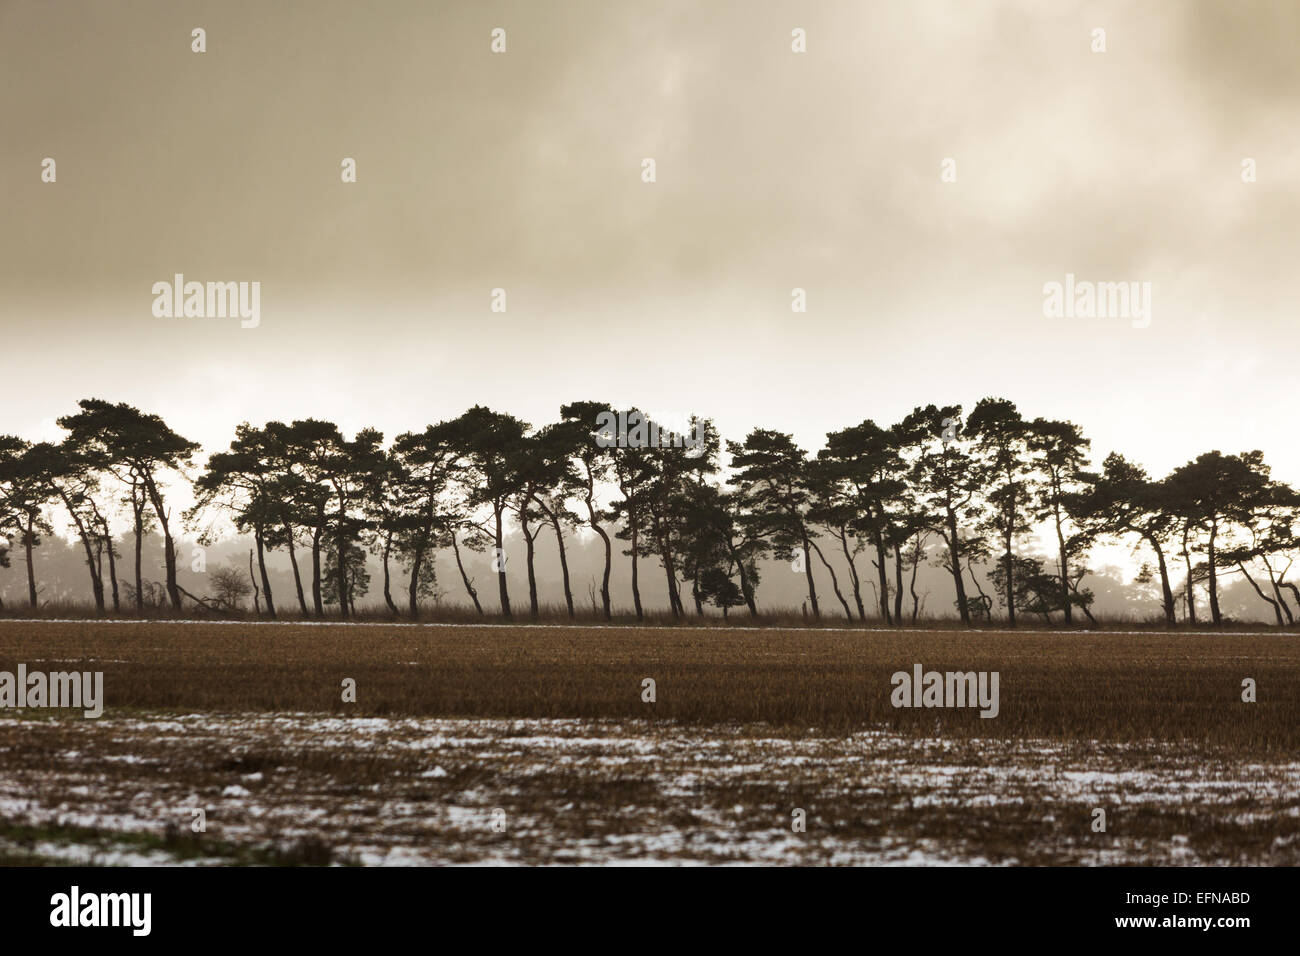 Scots Pine trees, symbol of the Brecks, moody overcast winter day muted colours and some snow in foreground field - Stock Image